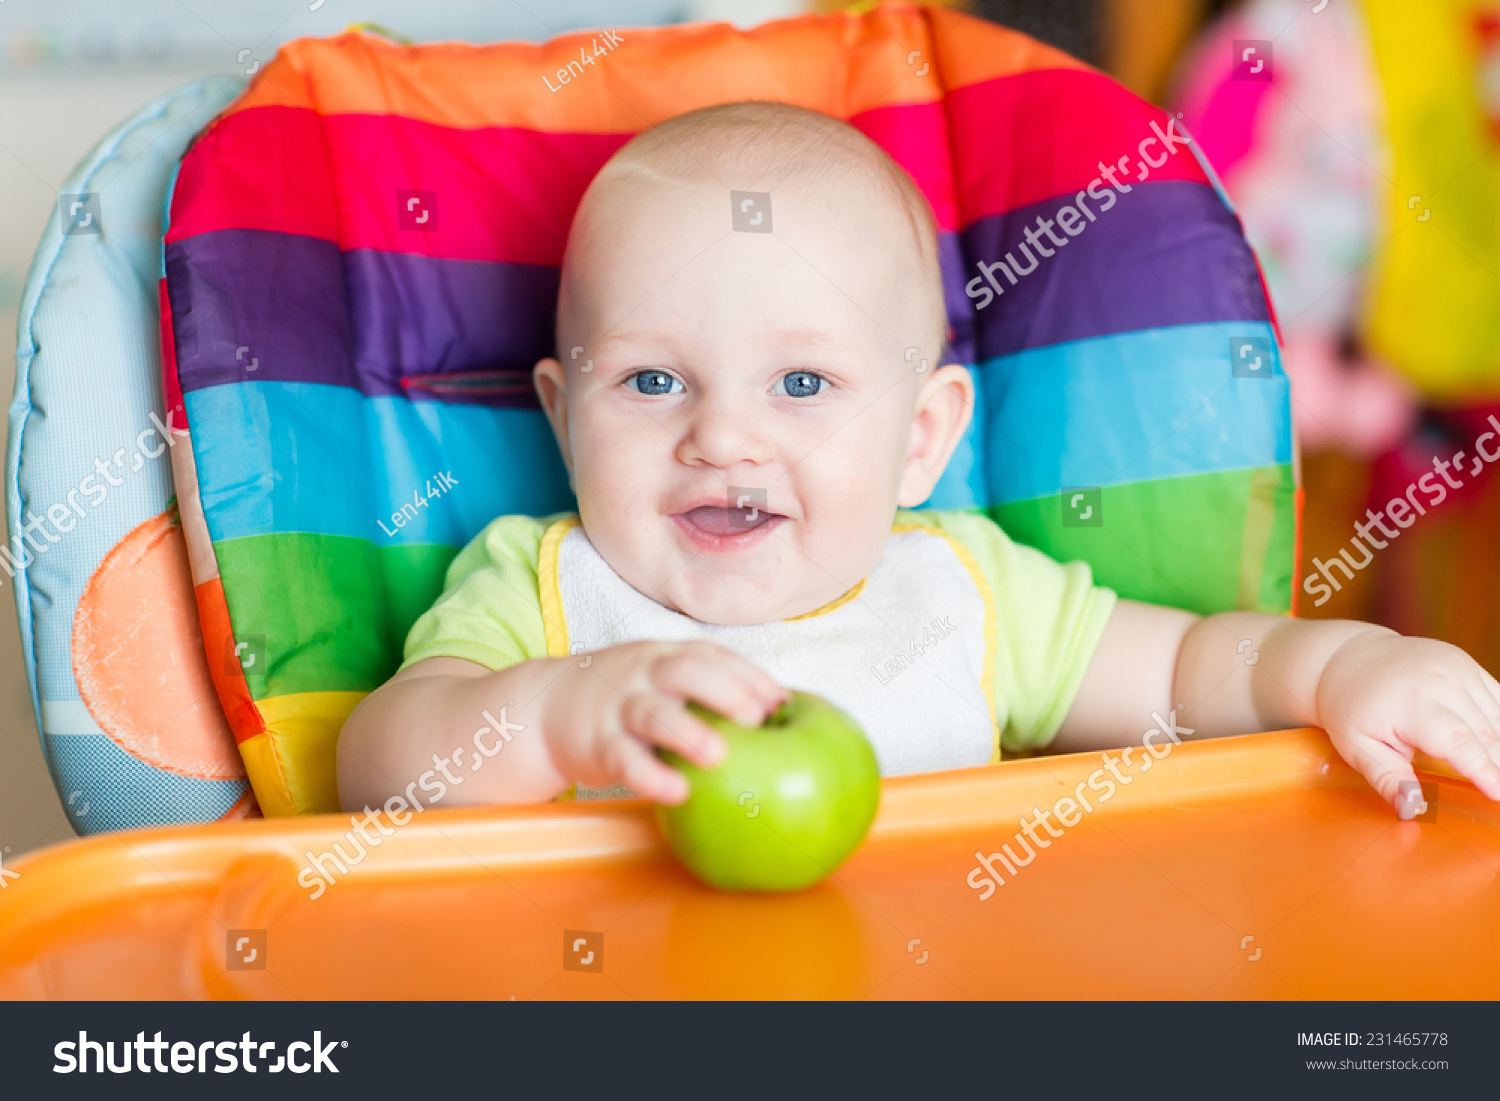 Baby Food Chair Adorable Baby Eating High Chair Babys Stock Photo